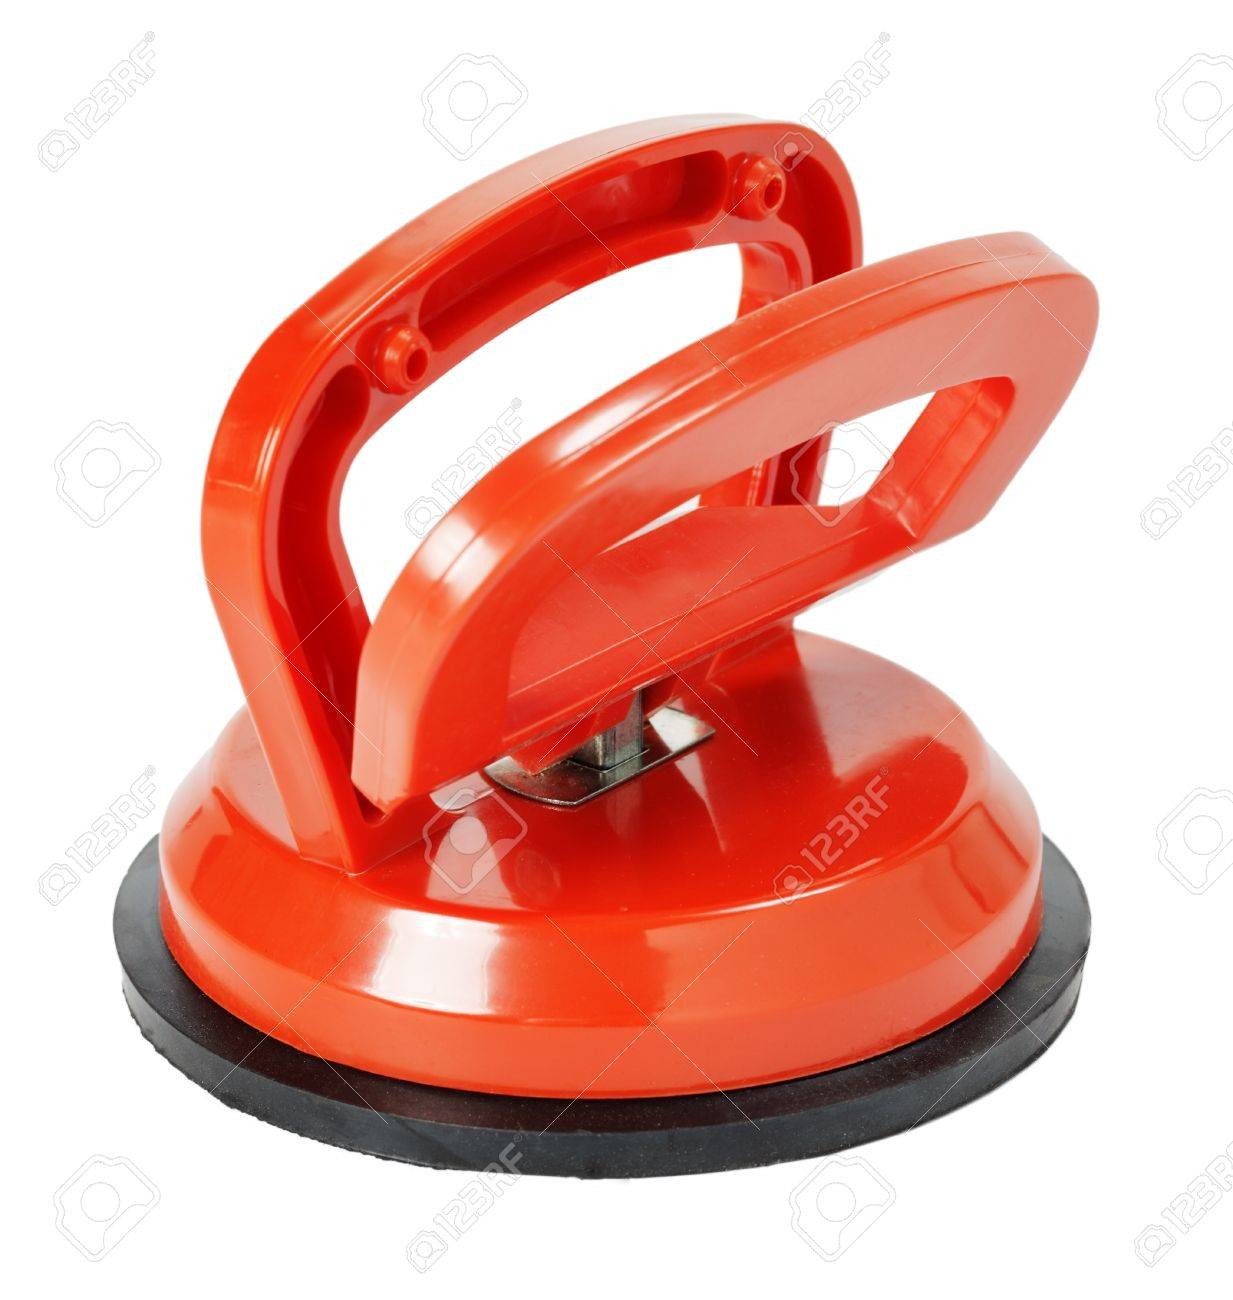 a suction cup tool used for lifting window glass tile and to